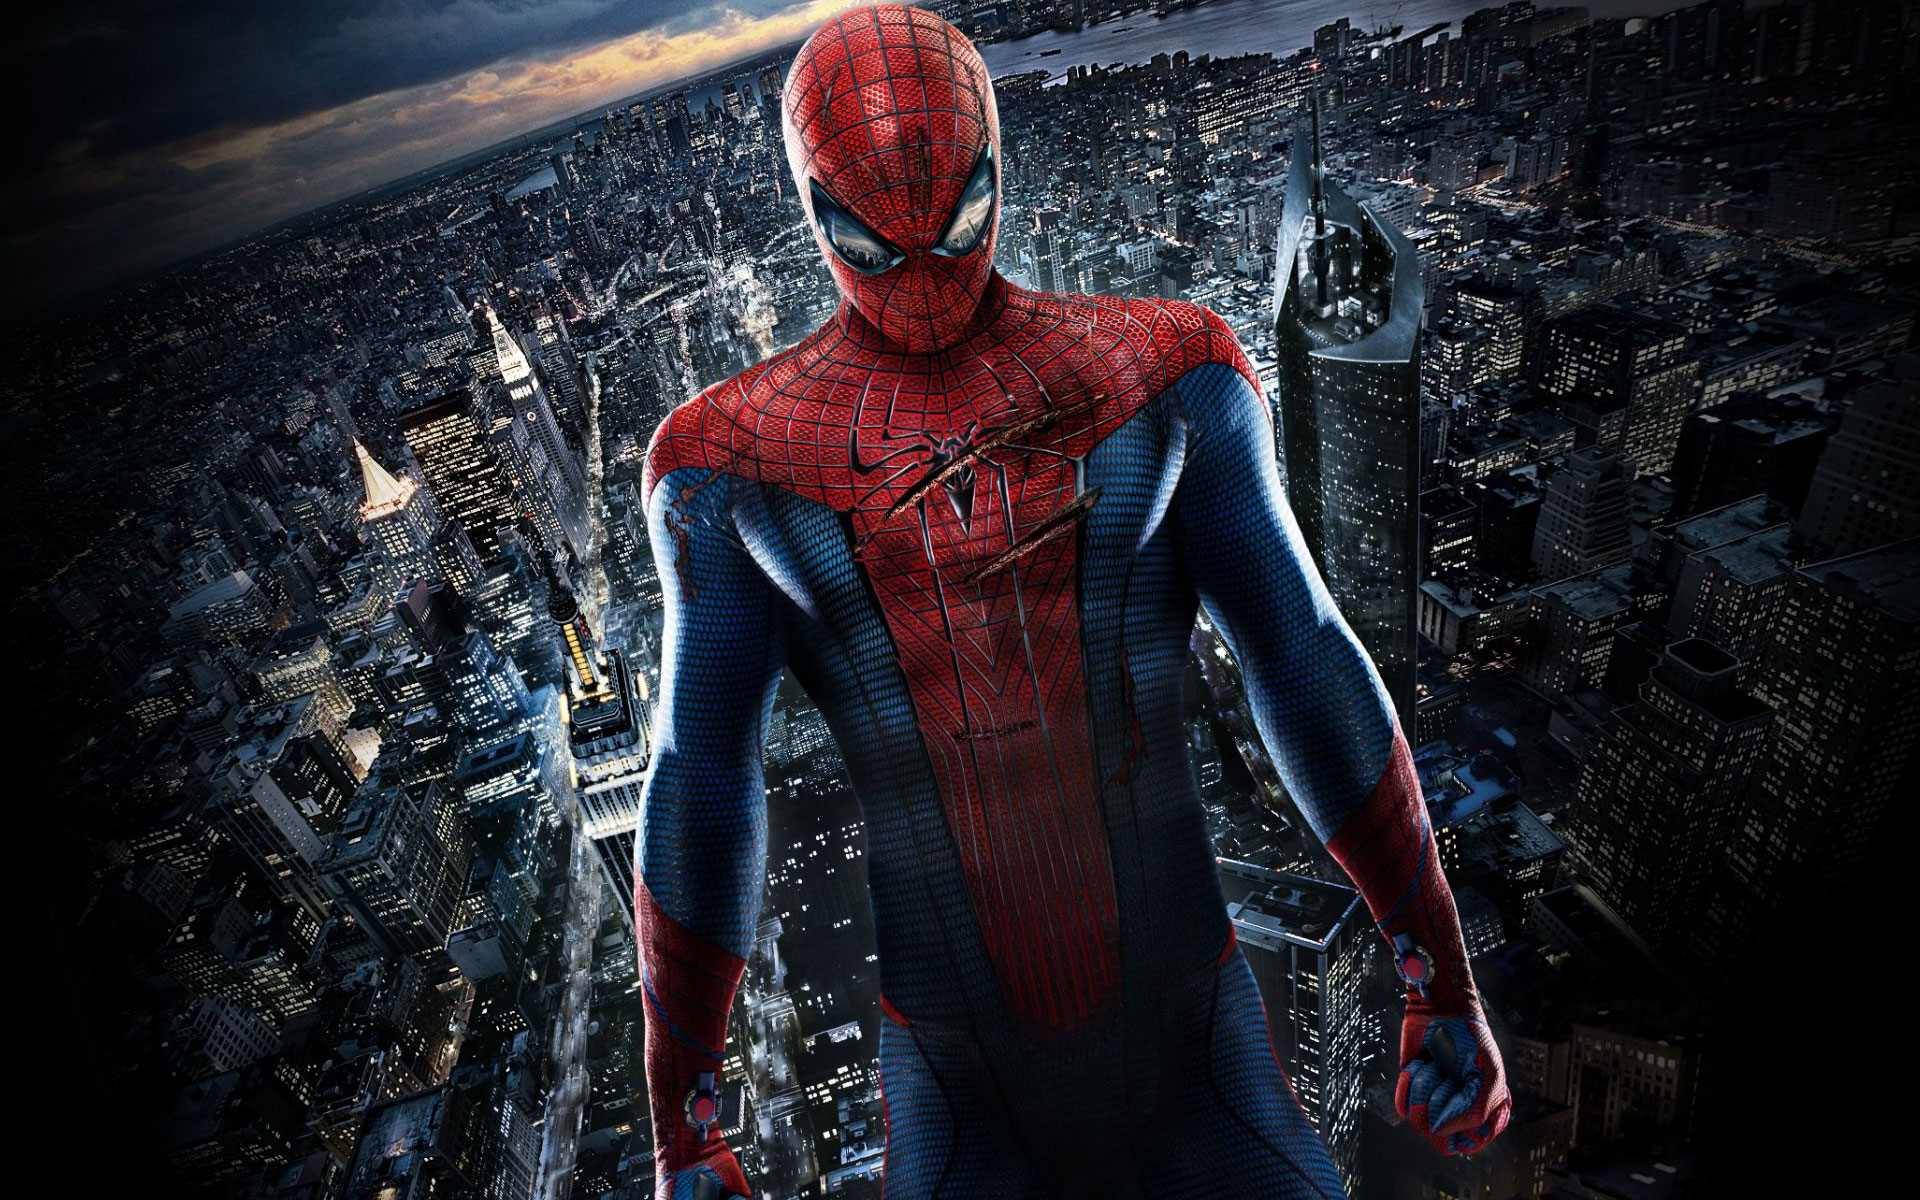 spiderman-is-this-the-first-marvel-movie-spider-man-will-star-in